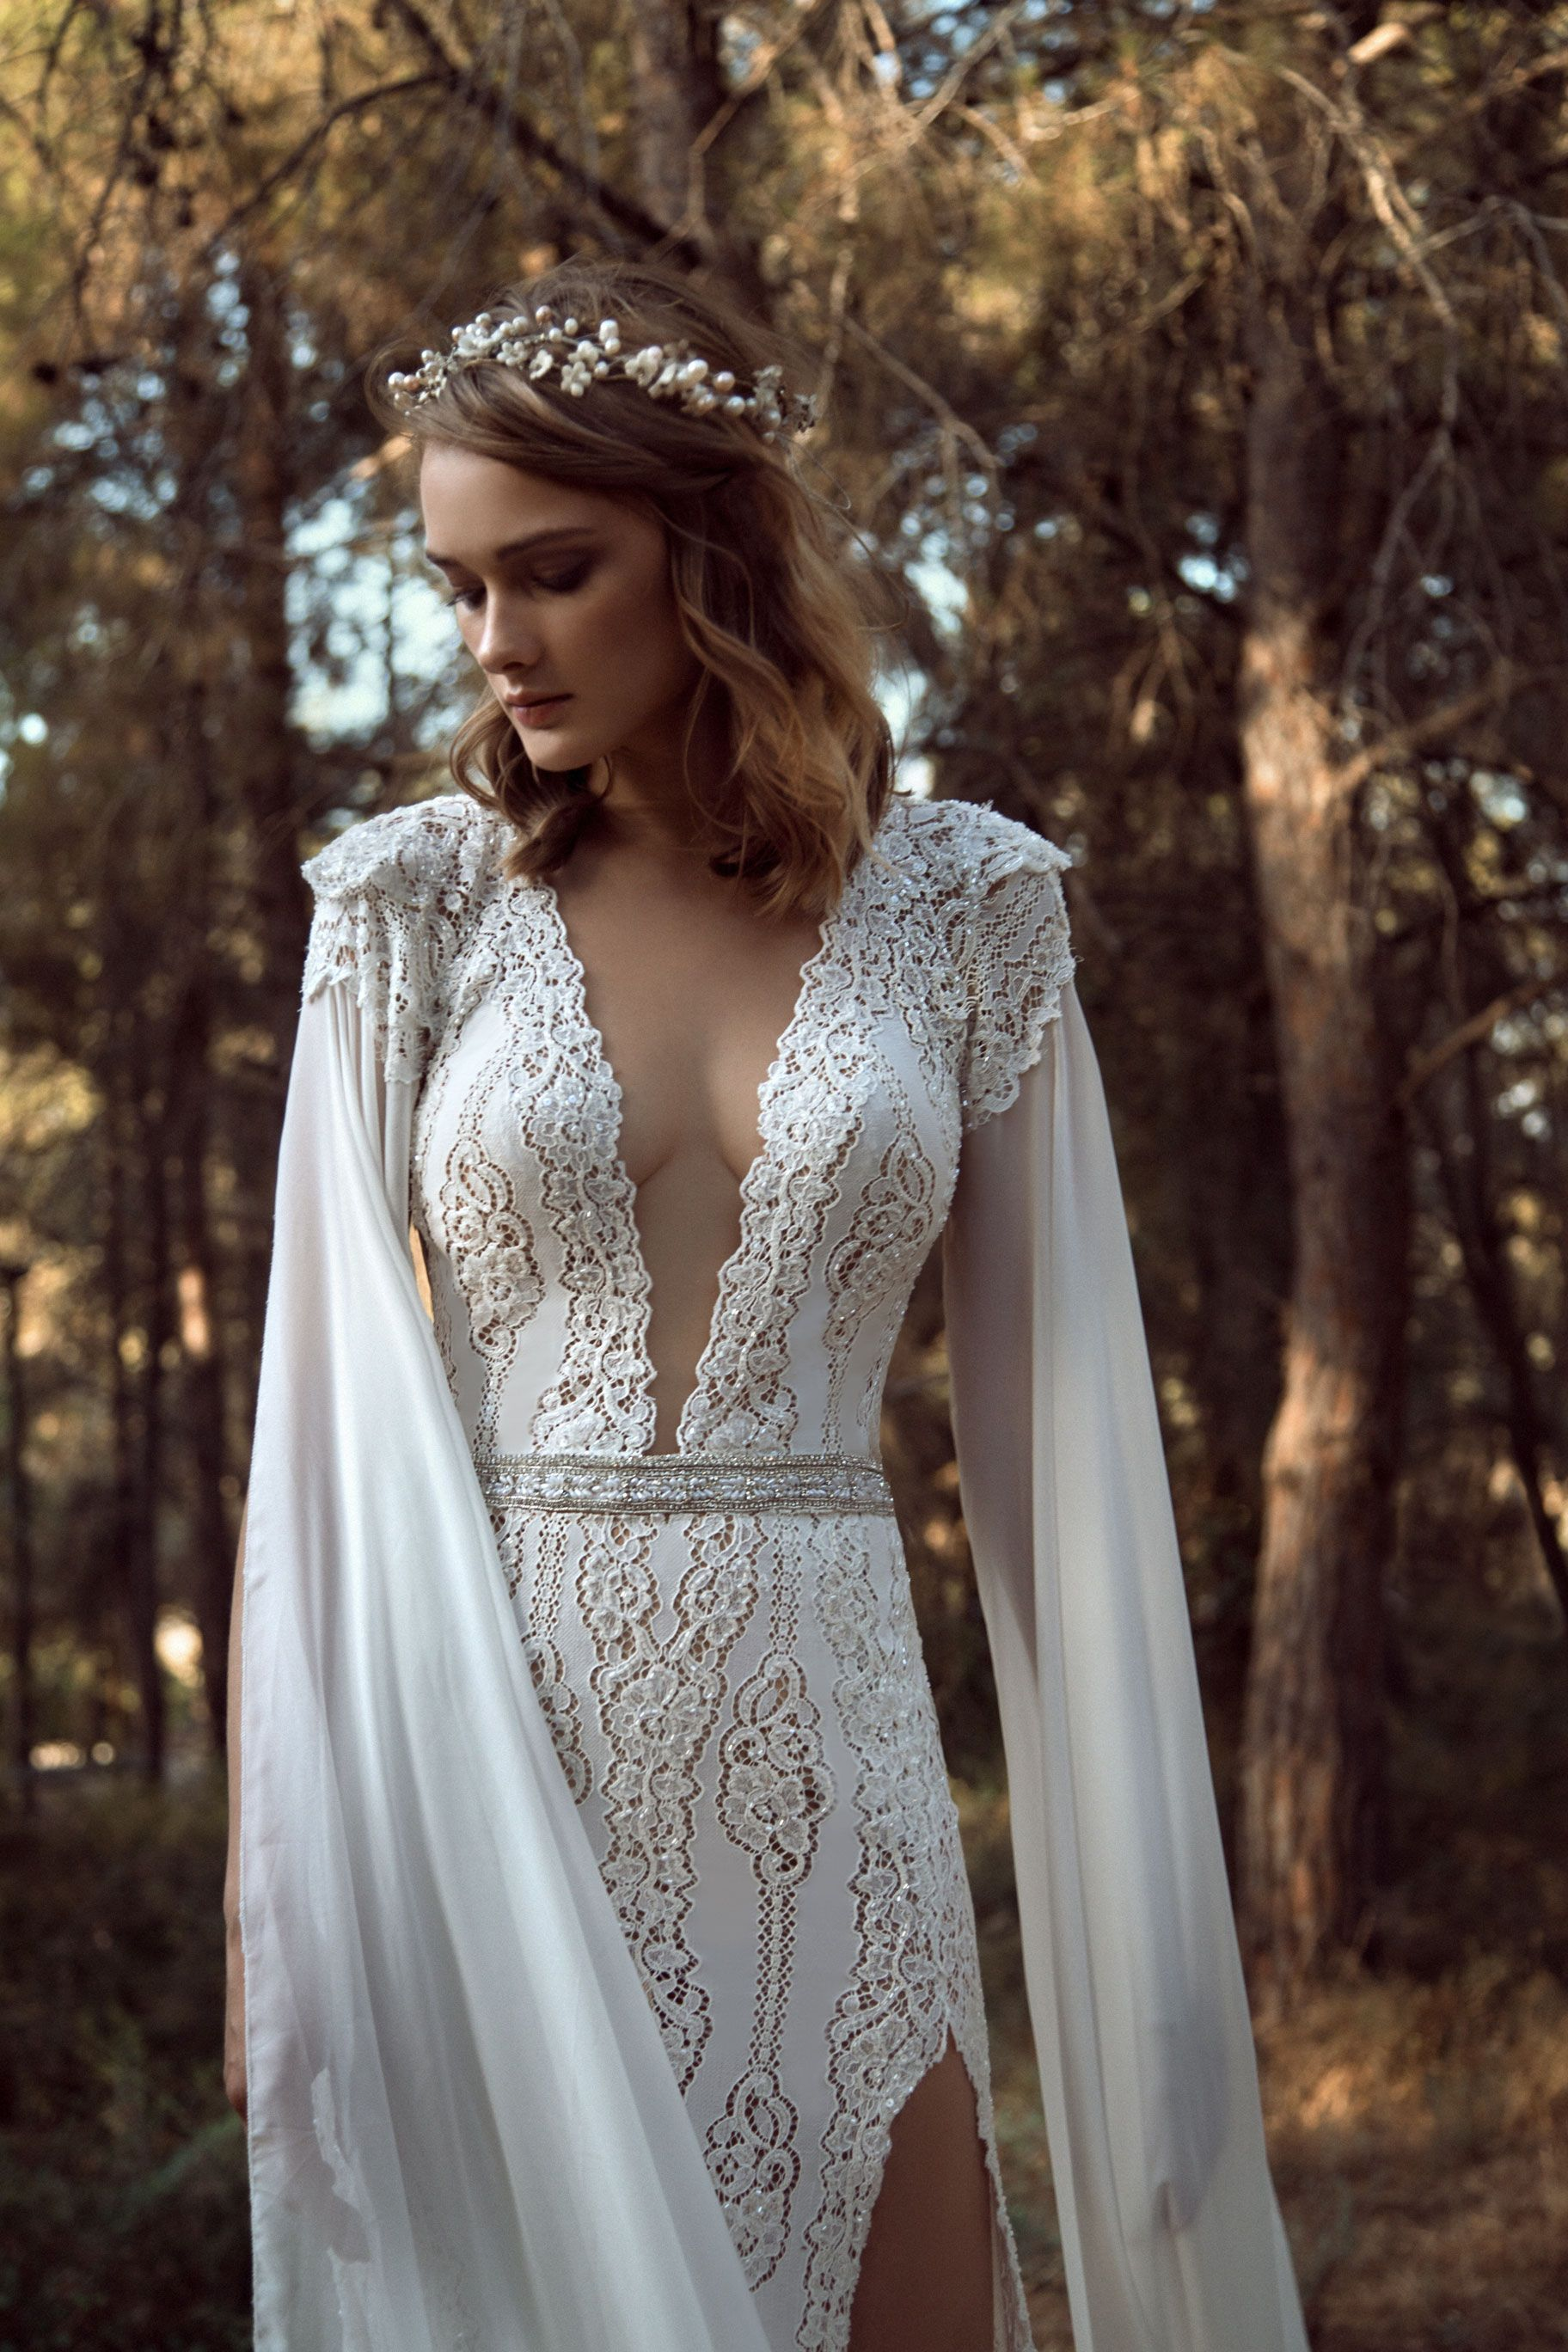 Add on sleeves for wedding dresses  Sexy Aline dress with lace and a front slit with a very low